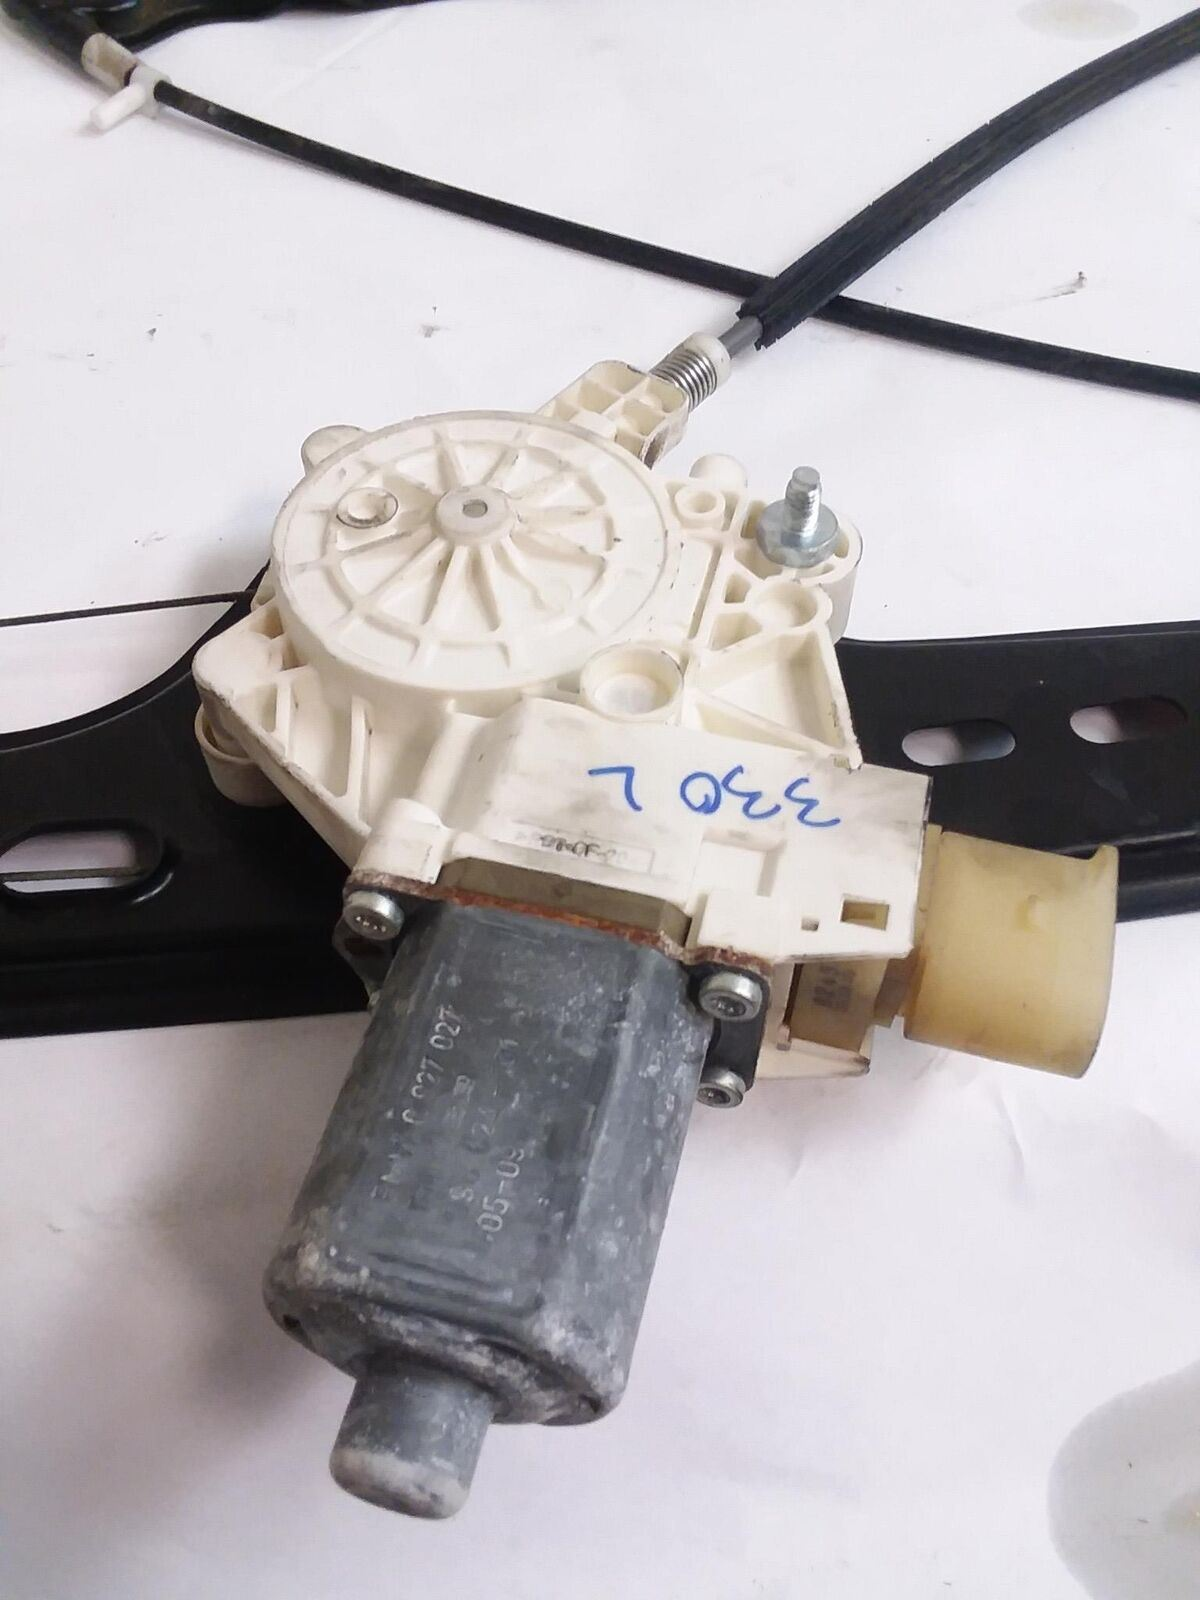 06-11 BMW E90 325I 328I 330I 335I M3 FRONT LEFT SIDE WINDOW REGULATOR WITH MOTOR - Click Receive Auto Parts